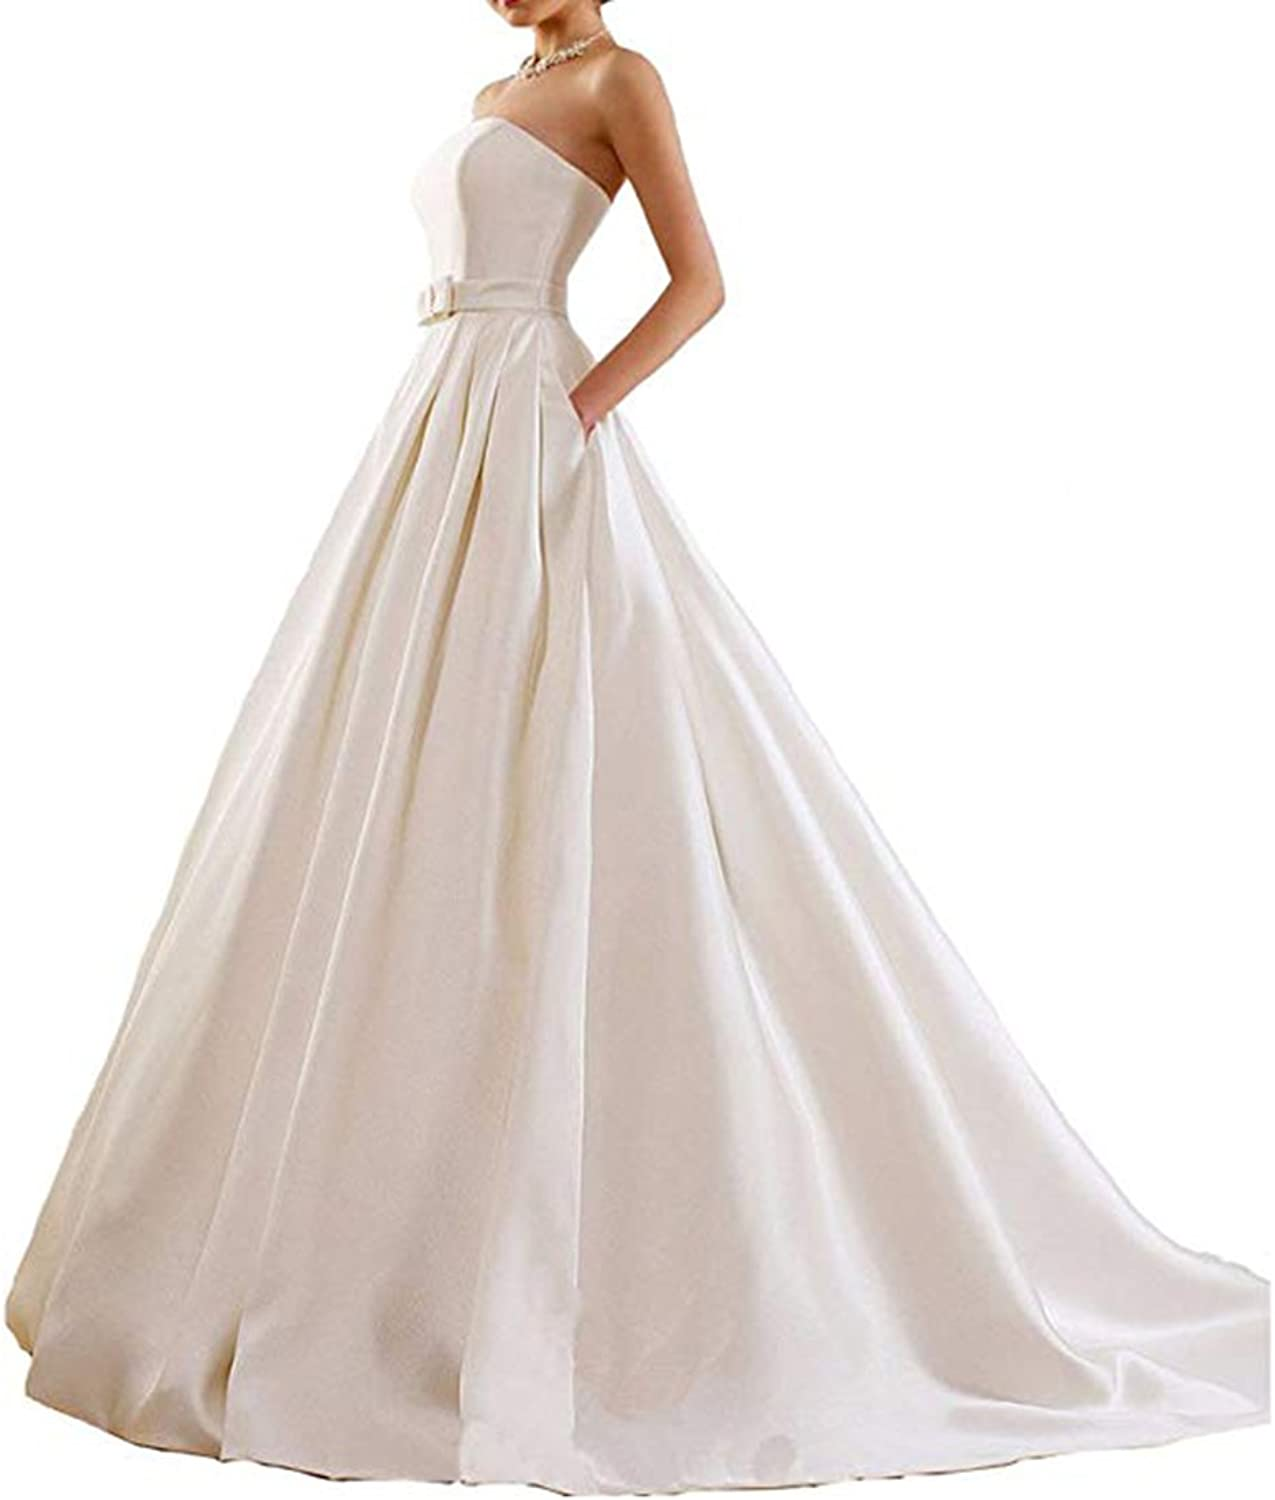 Alilith.Z Sexy Strapless Ball Gown Lace Wedding Dresses for Bride 3 4 Sleeves Satin Bridal Gowns 2018 with Pockets